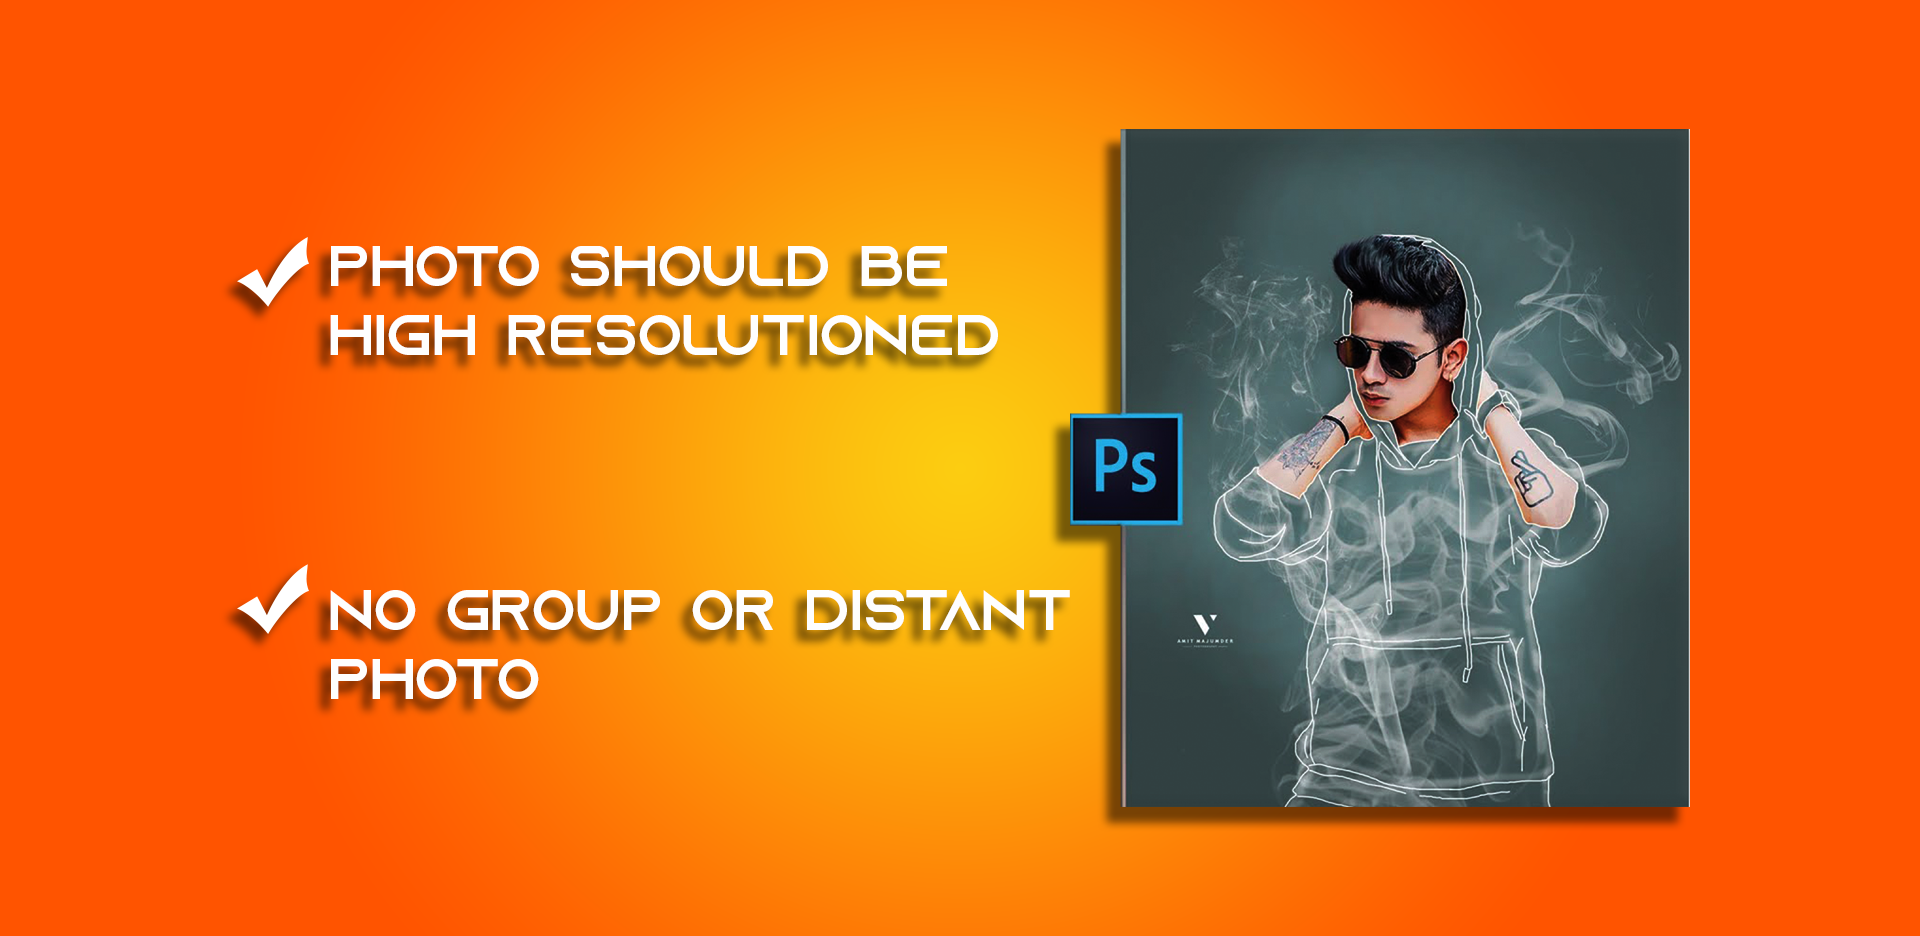 Transparent Smoke Effect On Your Photo - Photo Editing in Photoshop